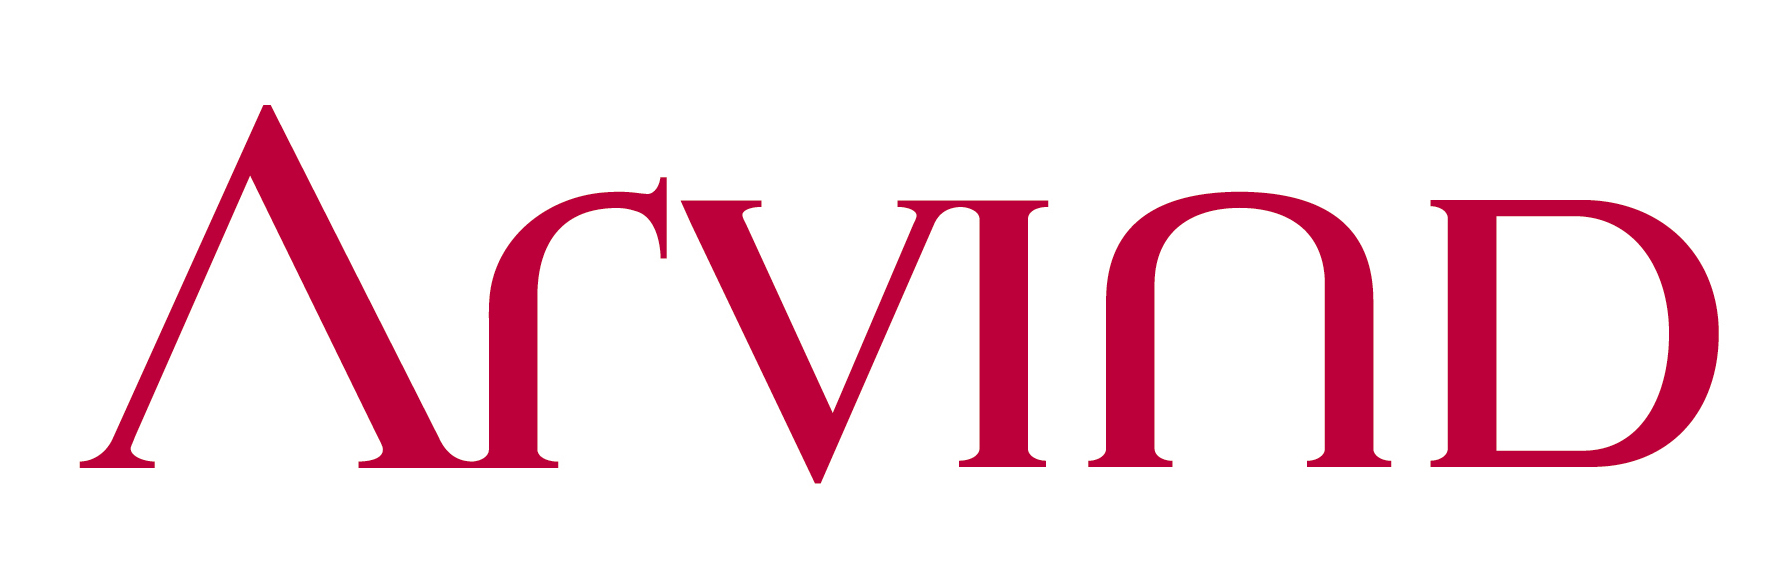 arvind mills a turnaround story This will result in branded apparel and retail business being demerged into the current subsidiary arvind fashions print this story.